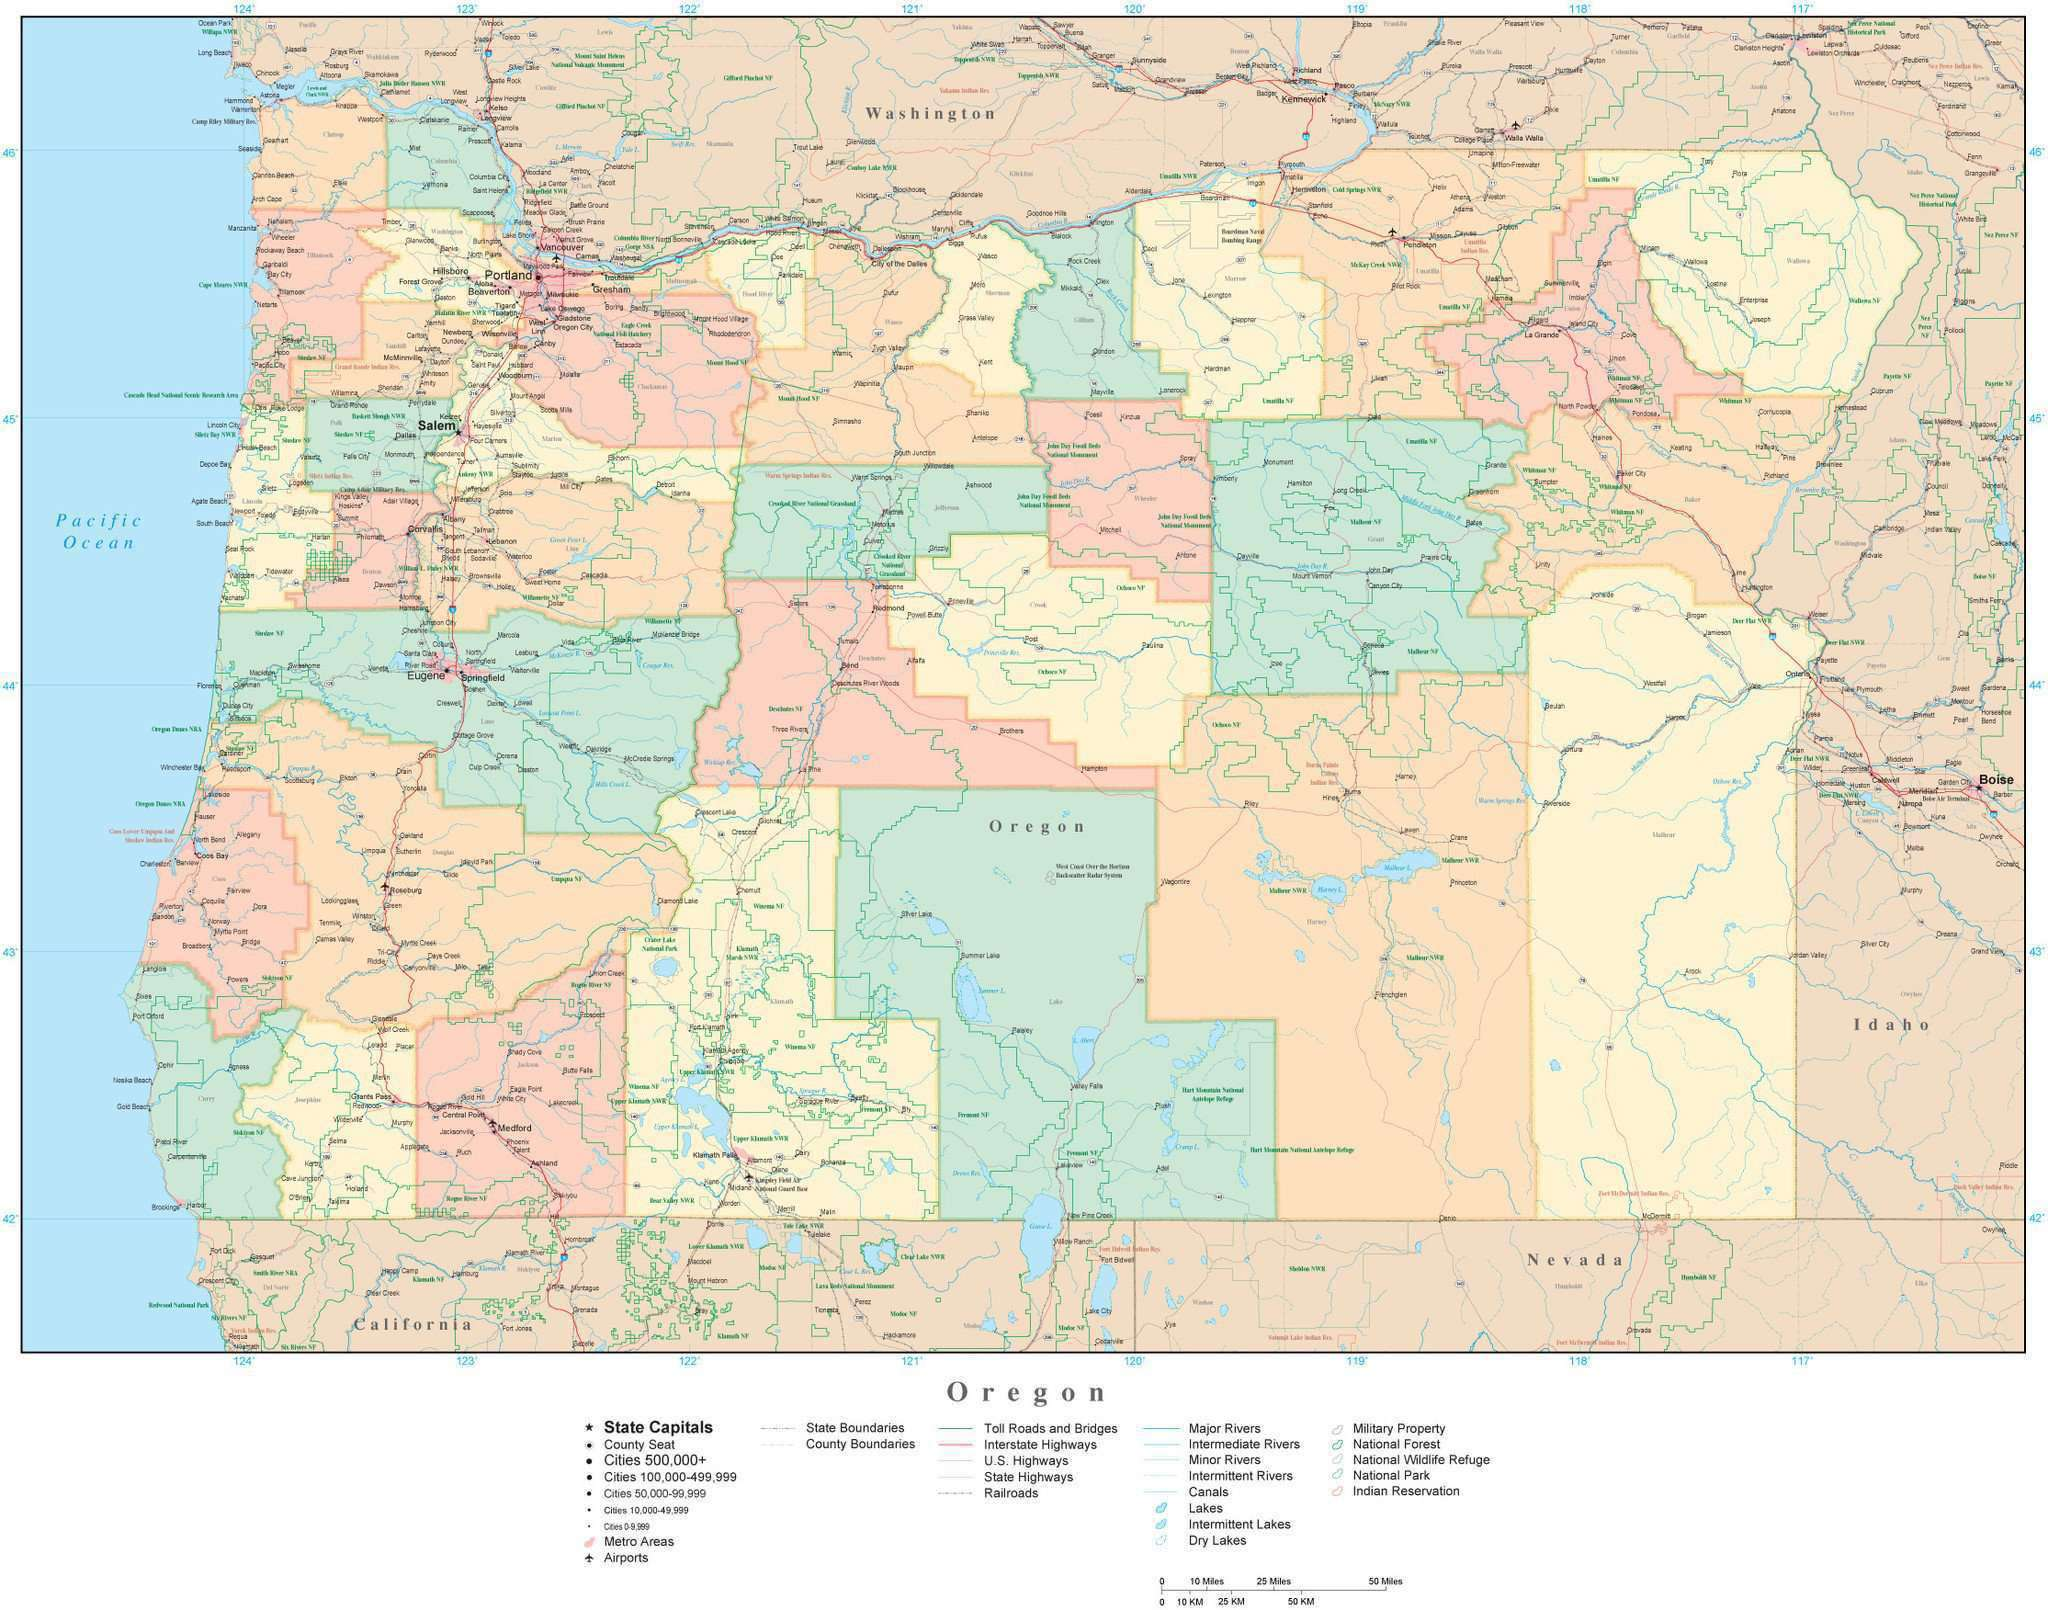 Oregon State Map With Counties.Oklahoma State Map In Adobe Illustrator Vector Format Detailed